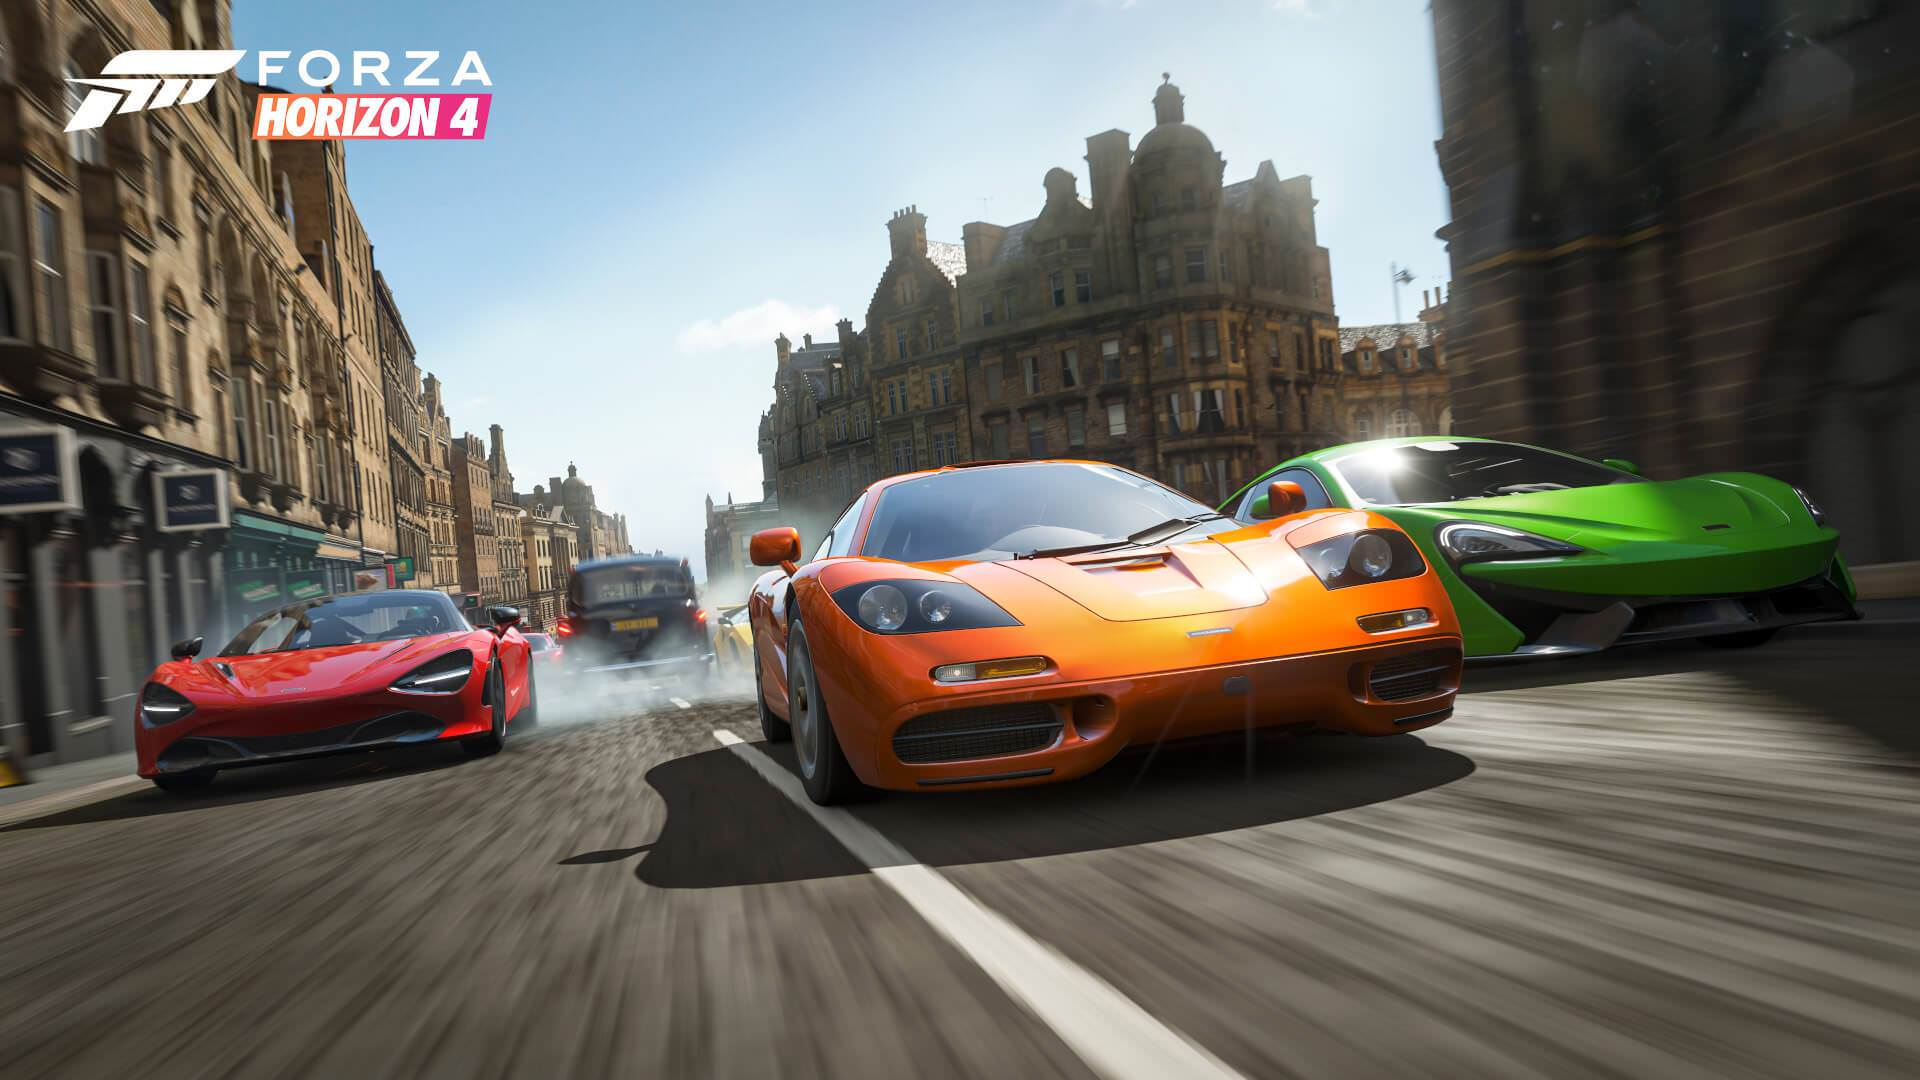 forza horizon 4 demo will be available to download later today